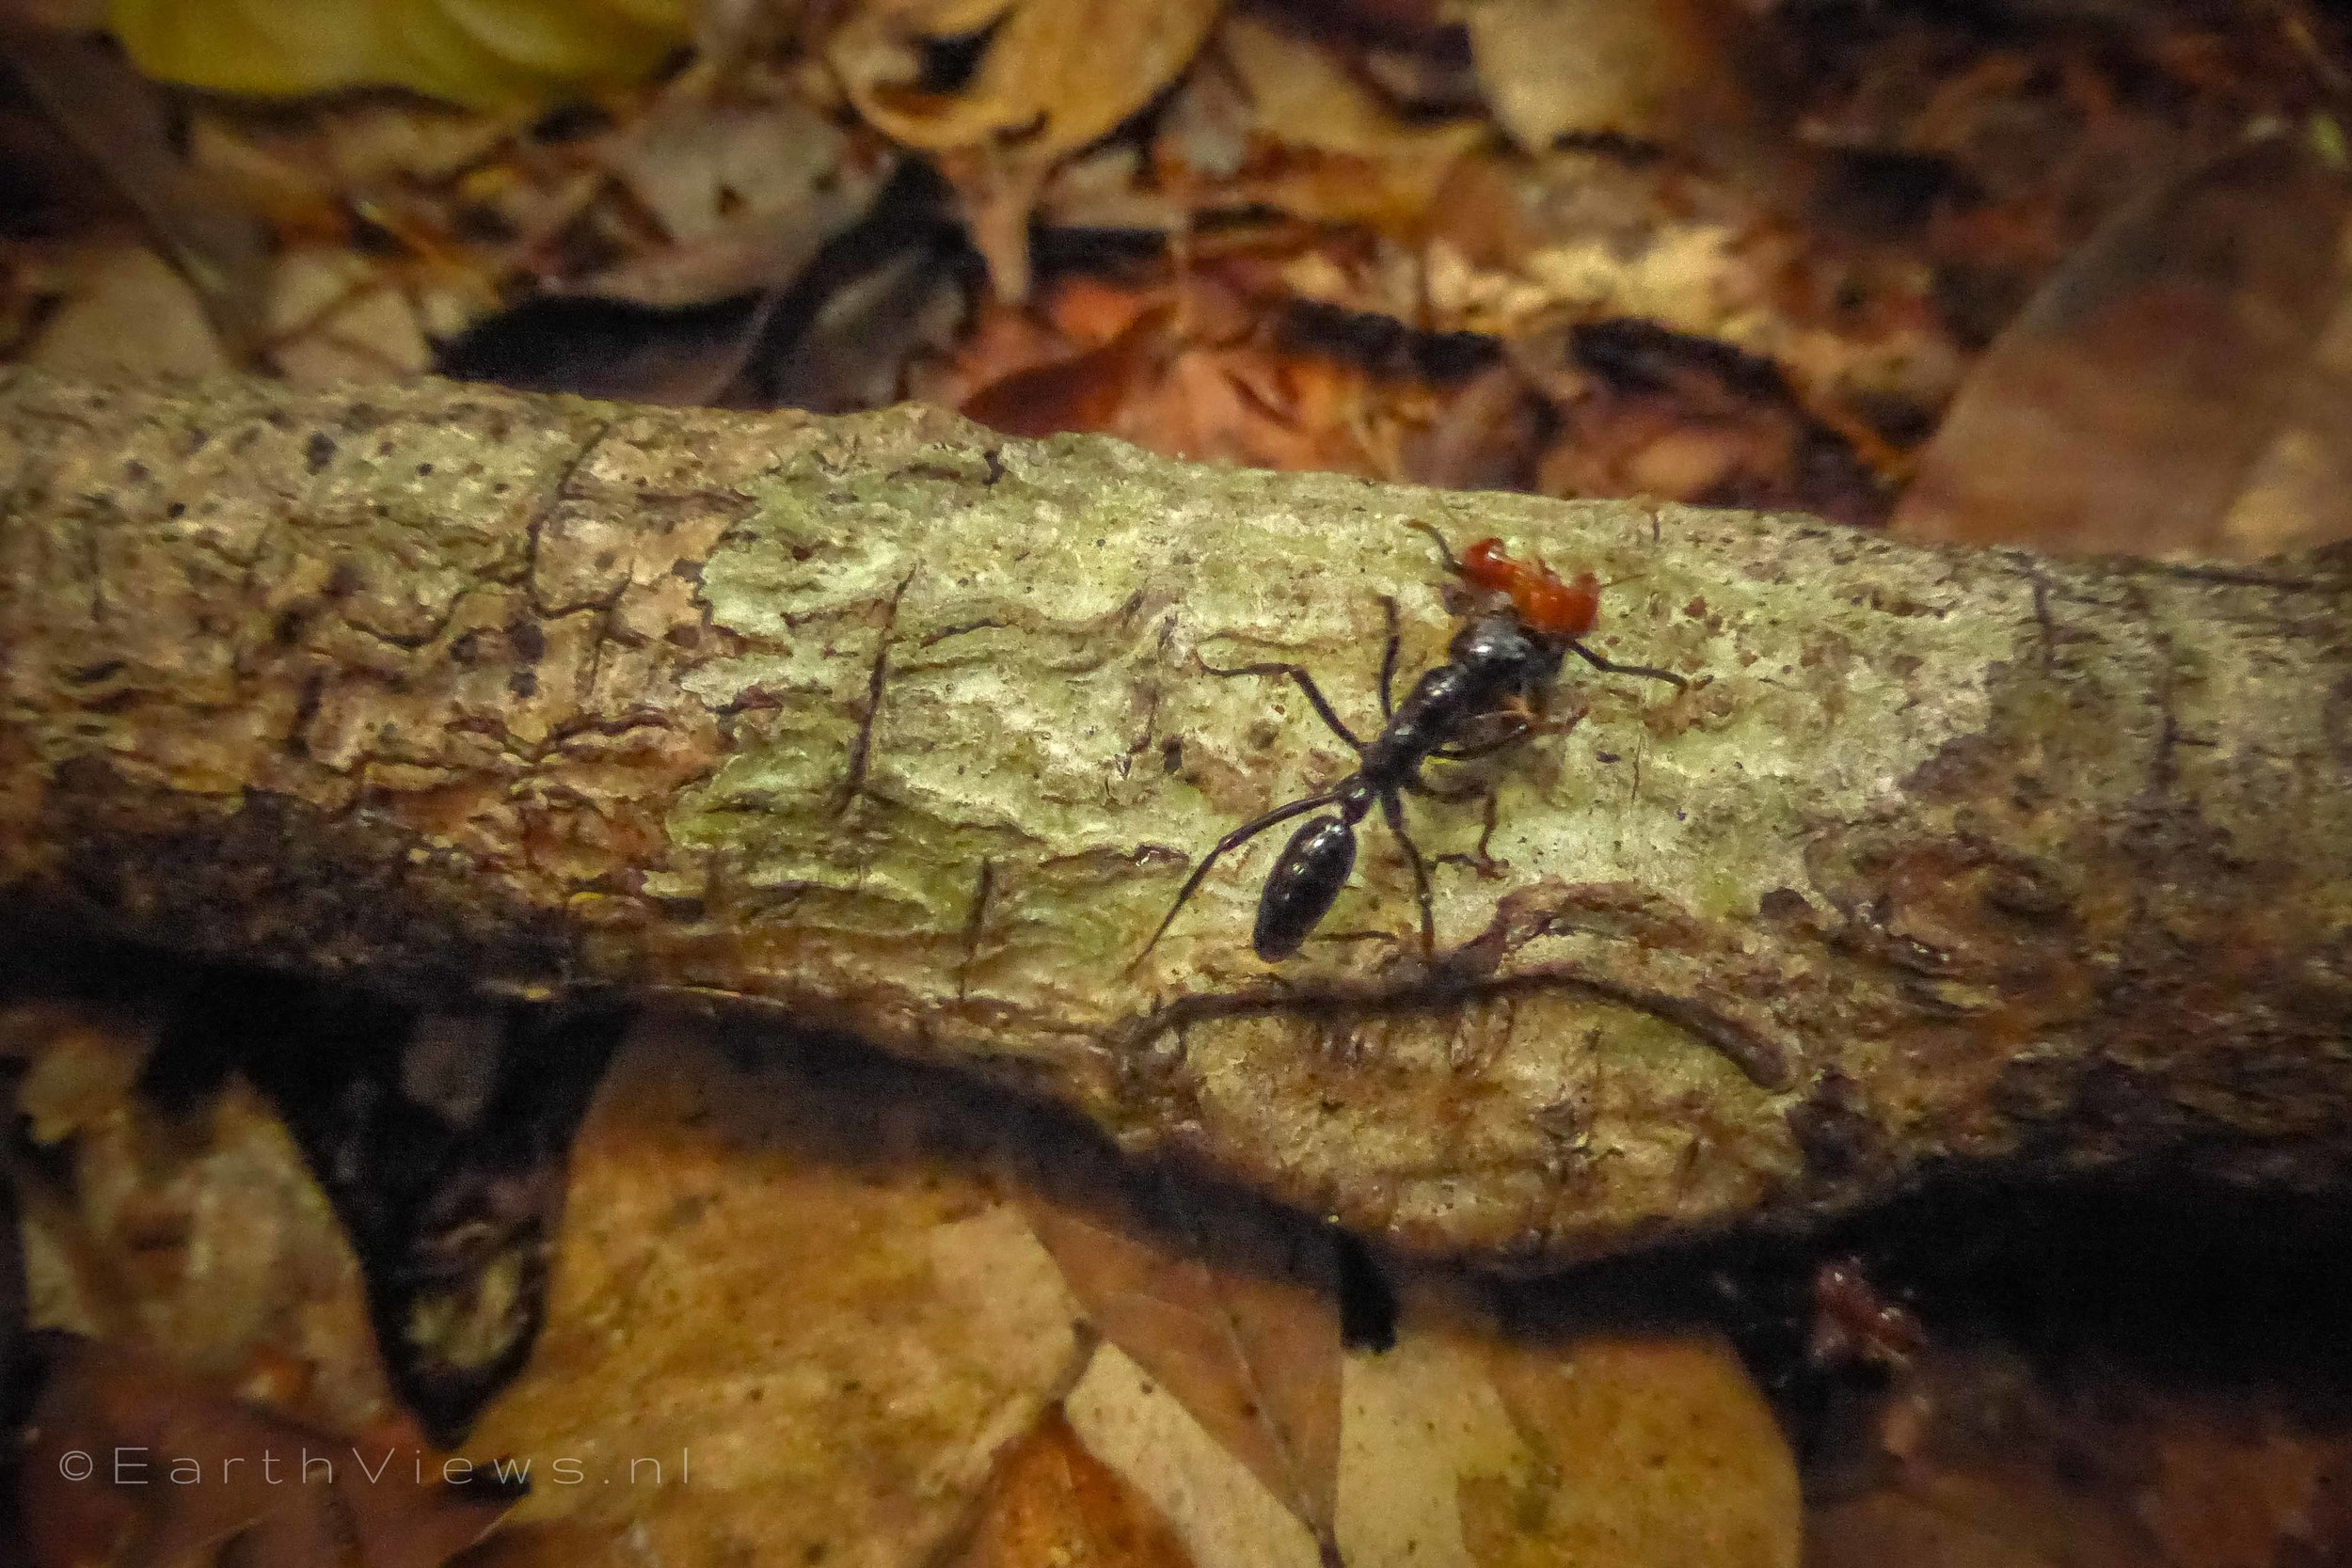 One of the trap jaw ants that were causing jungle trouble.